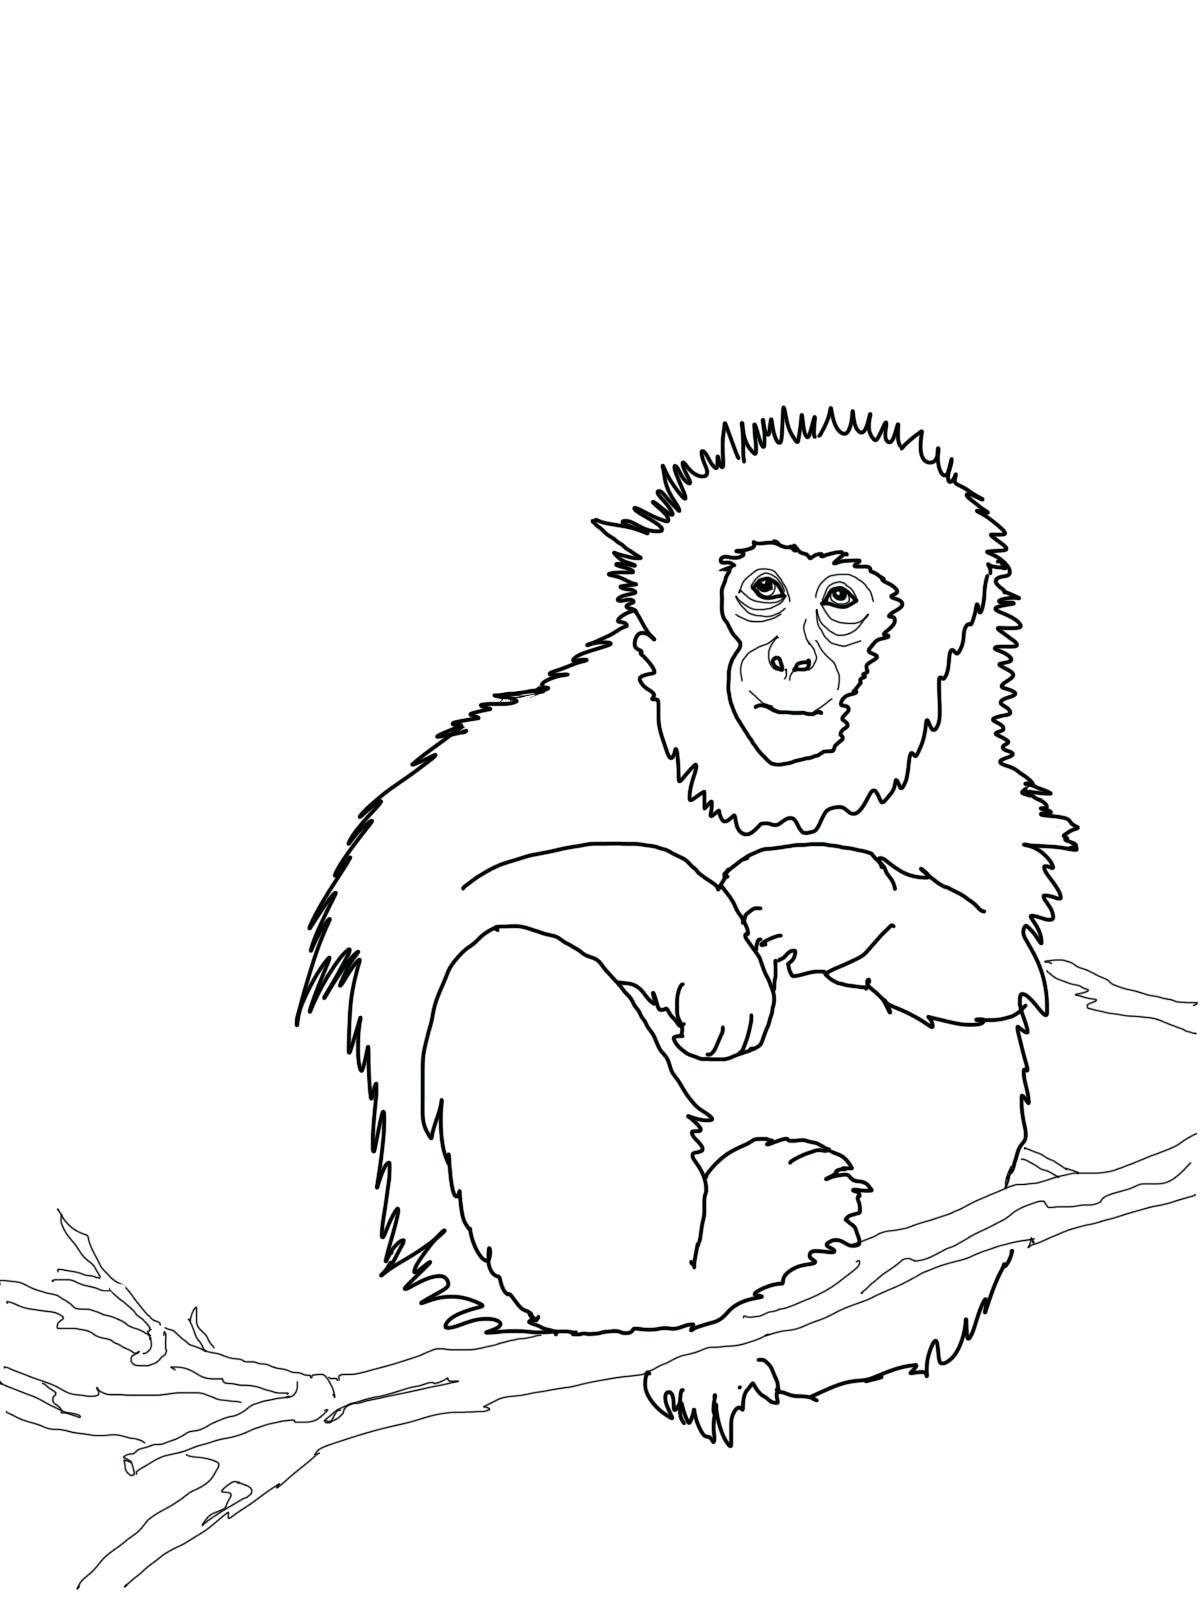 1200x1600 Coloring Howler Monkey Coloring Page Sheets Sheet. Howler Monkey